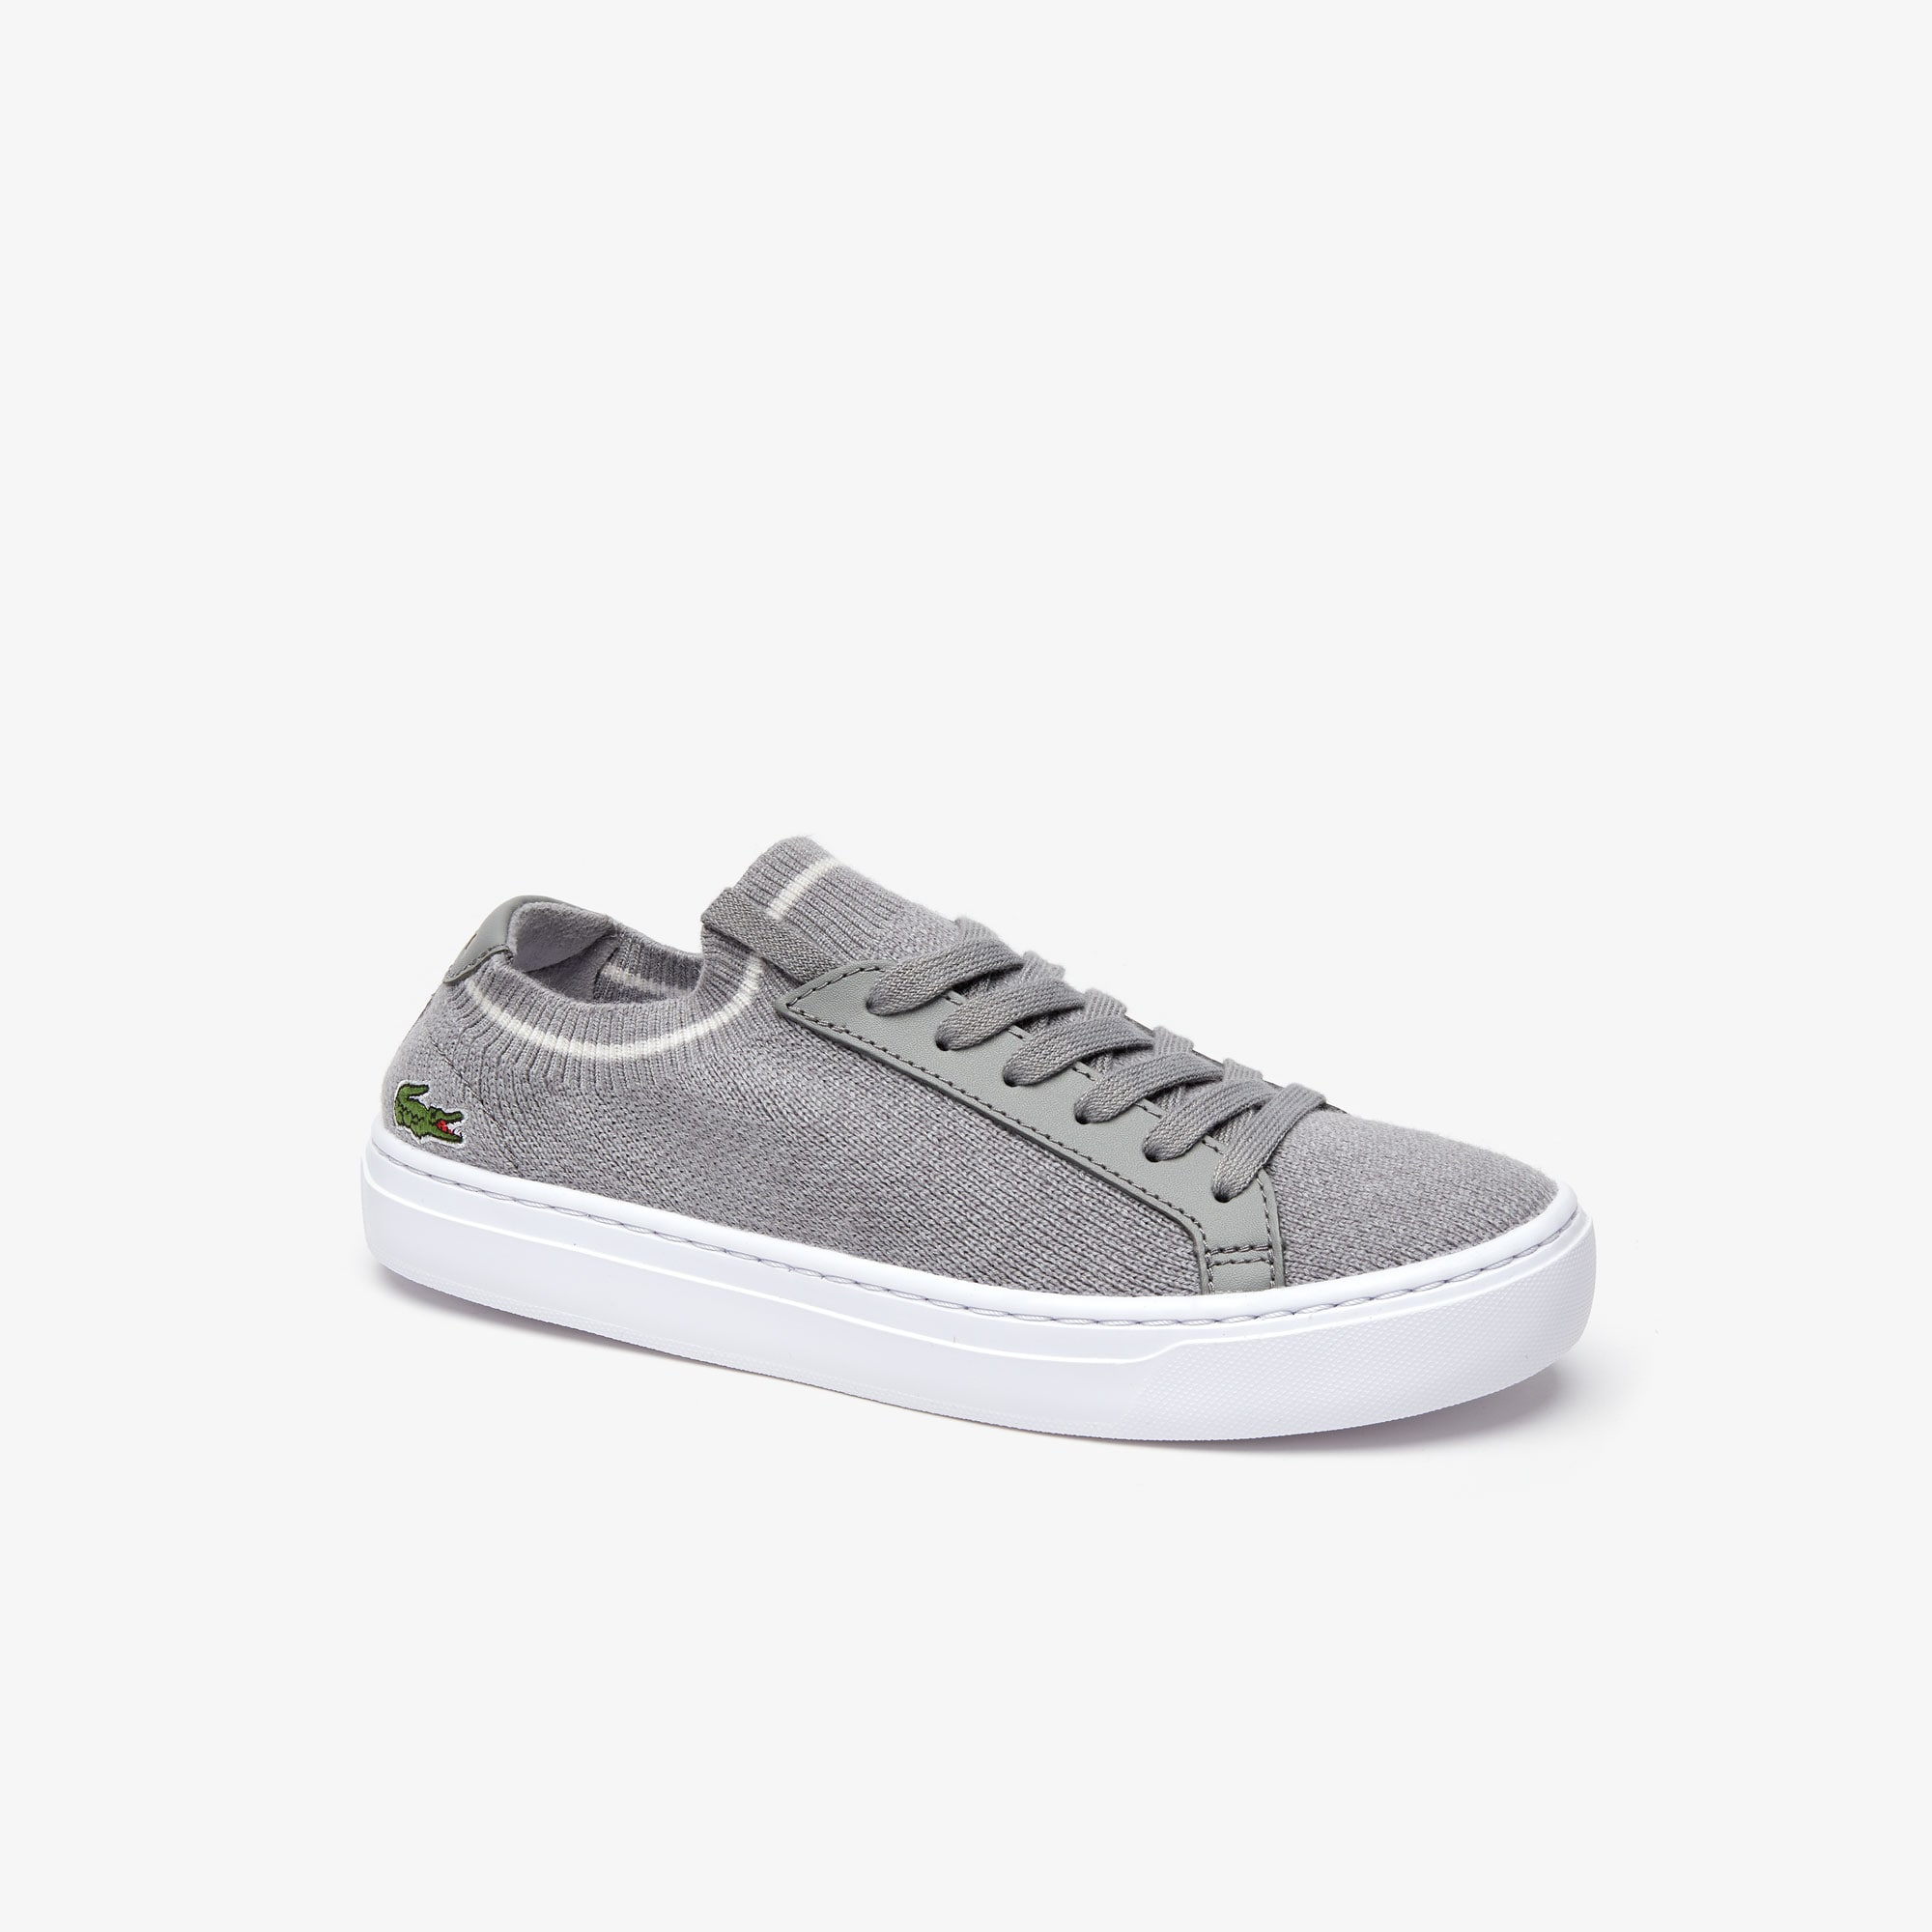 433919ab7 Polo shirts, shoes, leather goods | LACOSTE Online Boutique